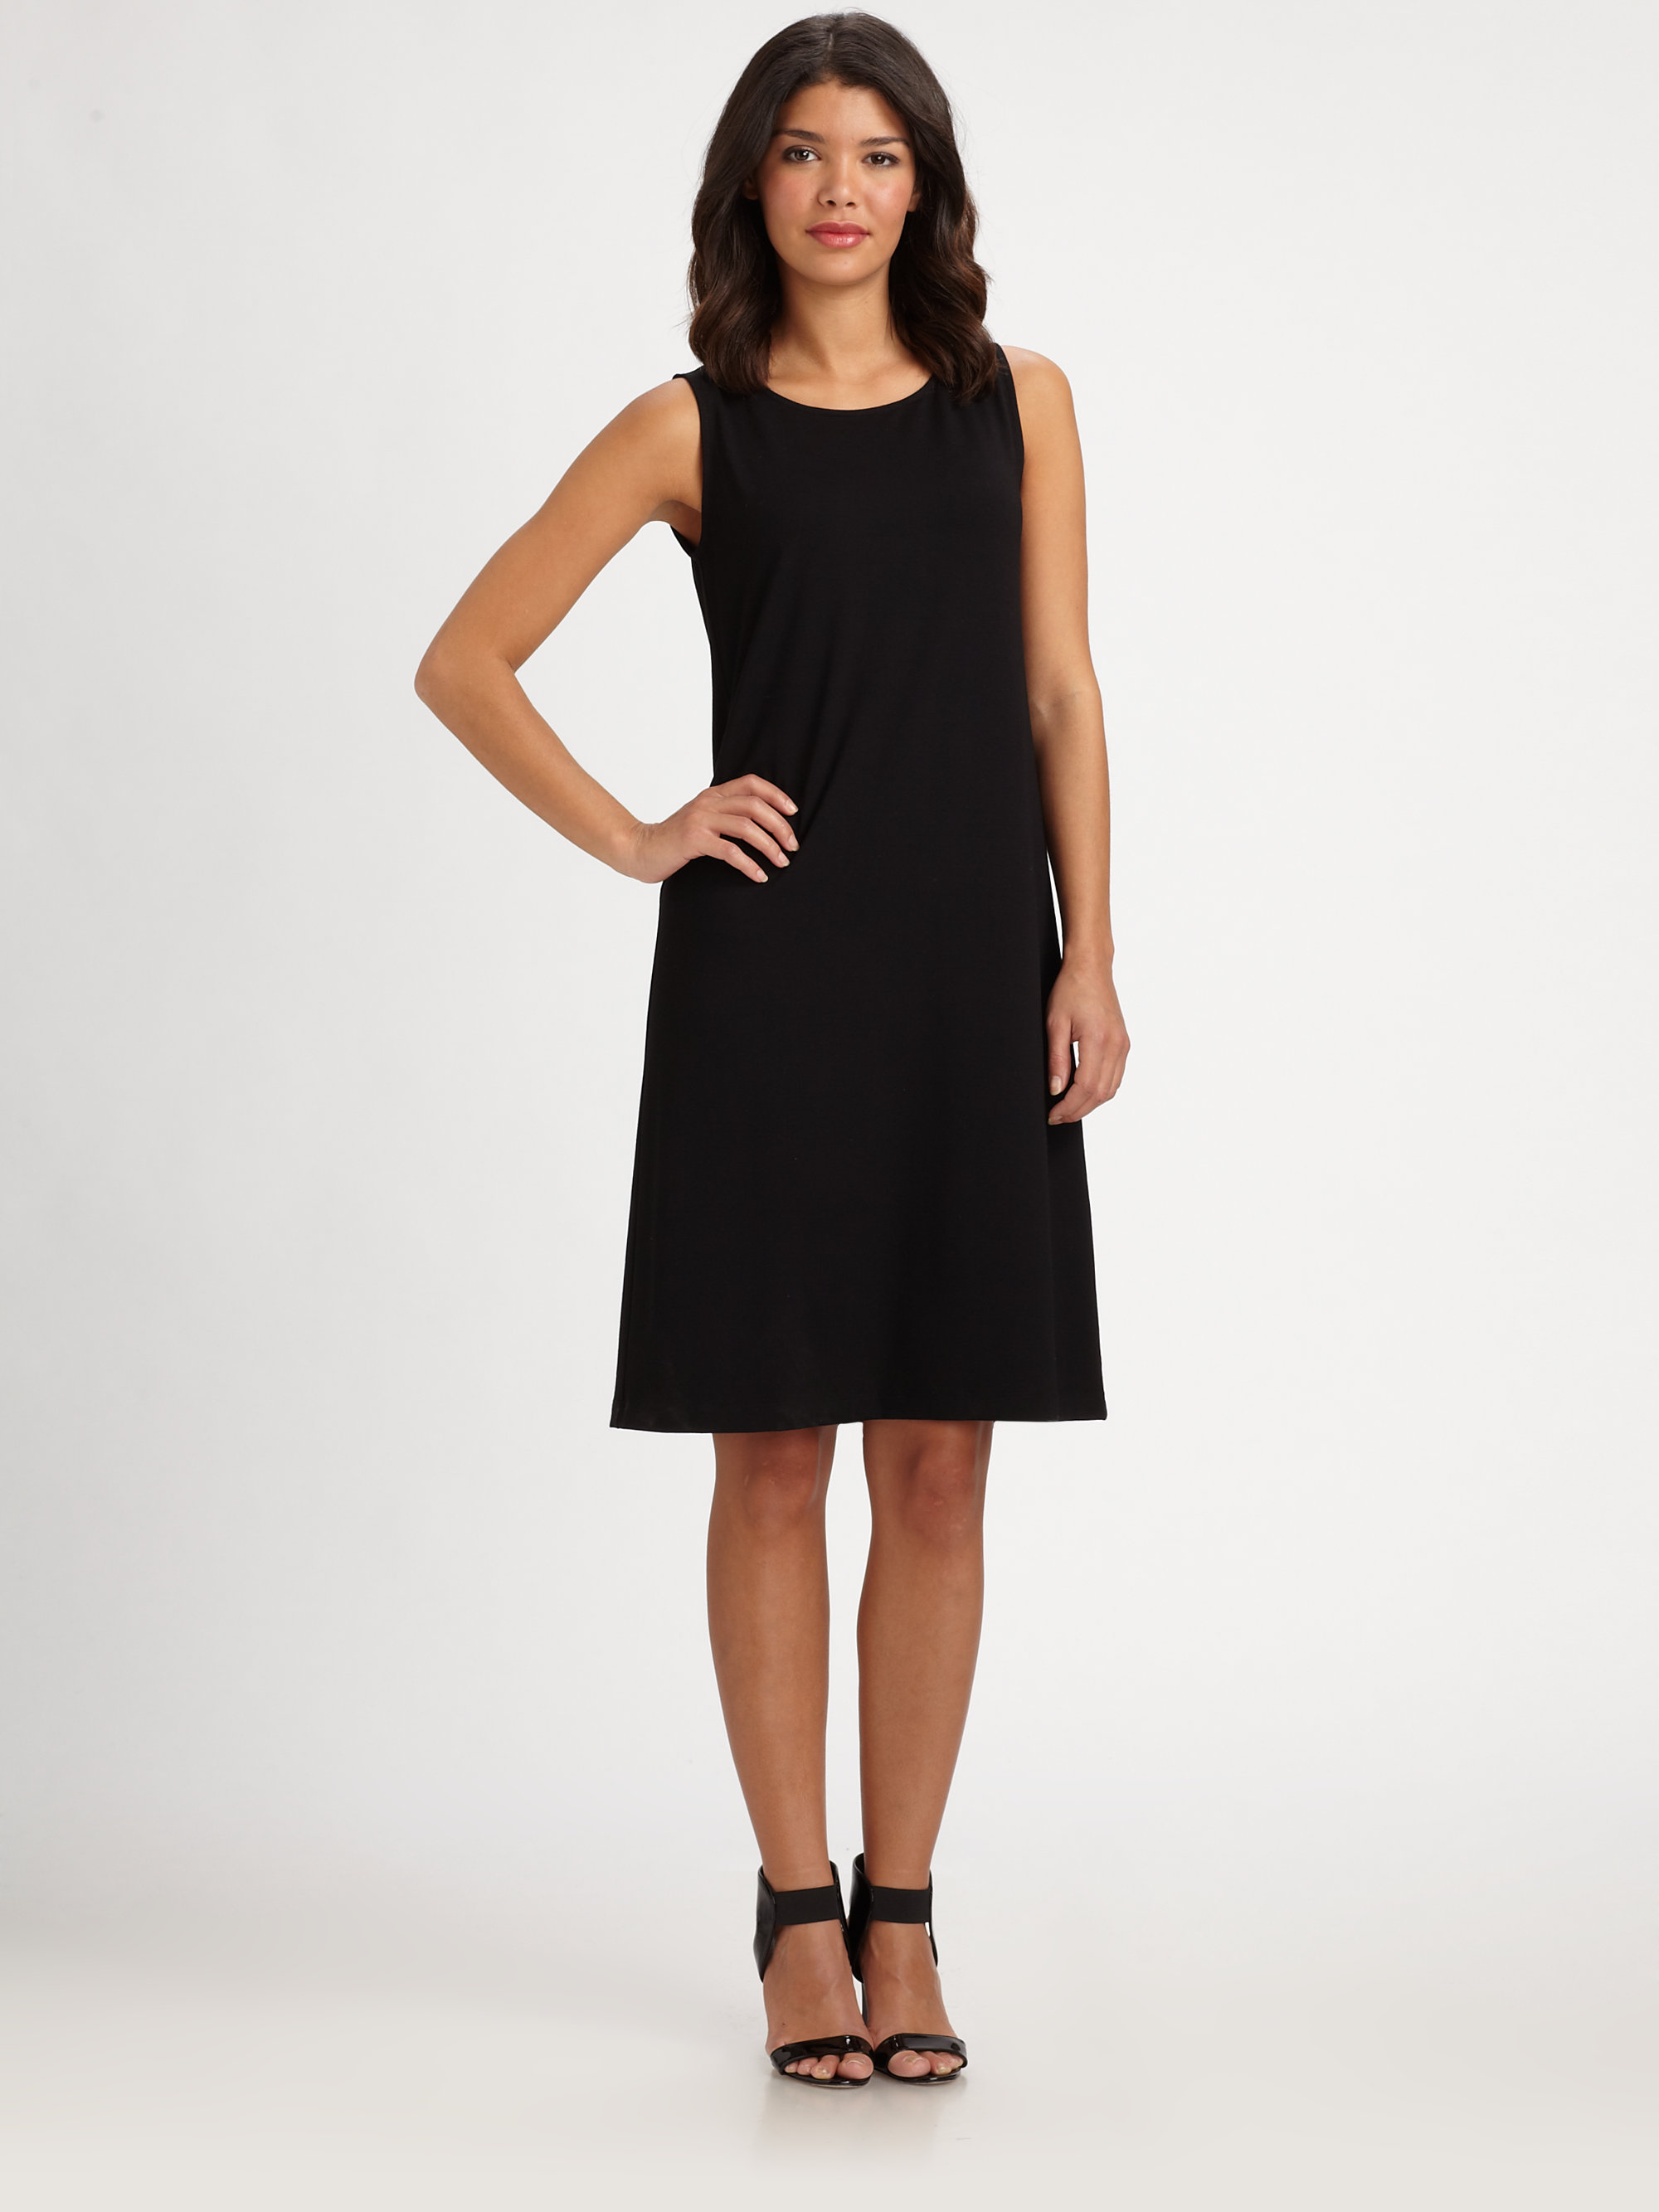 Eileen fisher Sleeveless Jersey Shift Dress in Black | Lyst